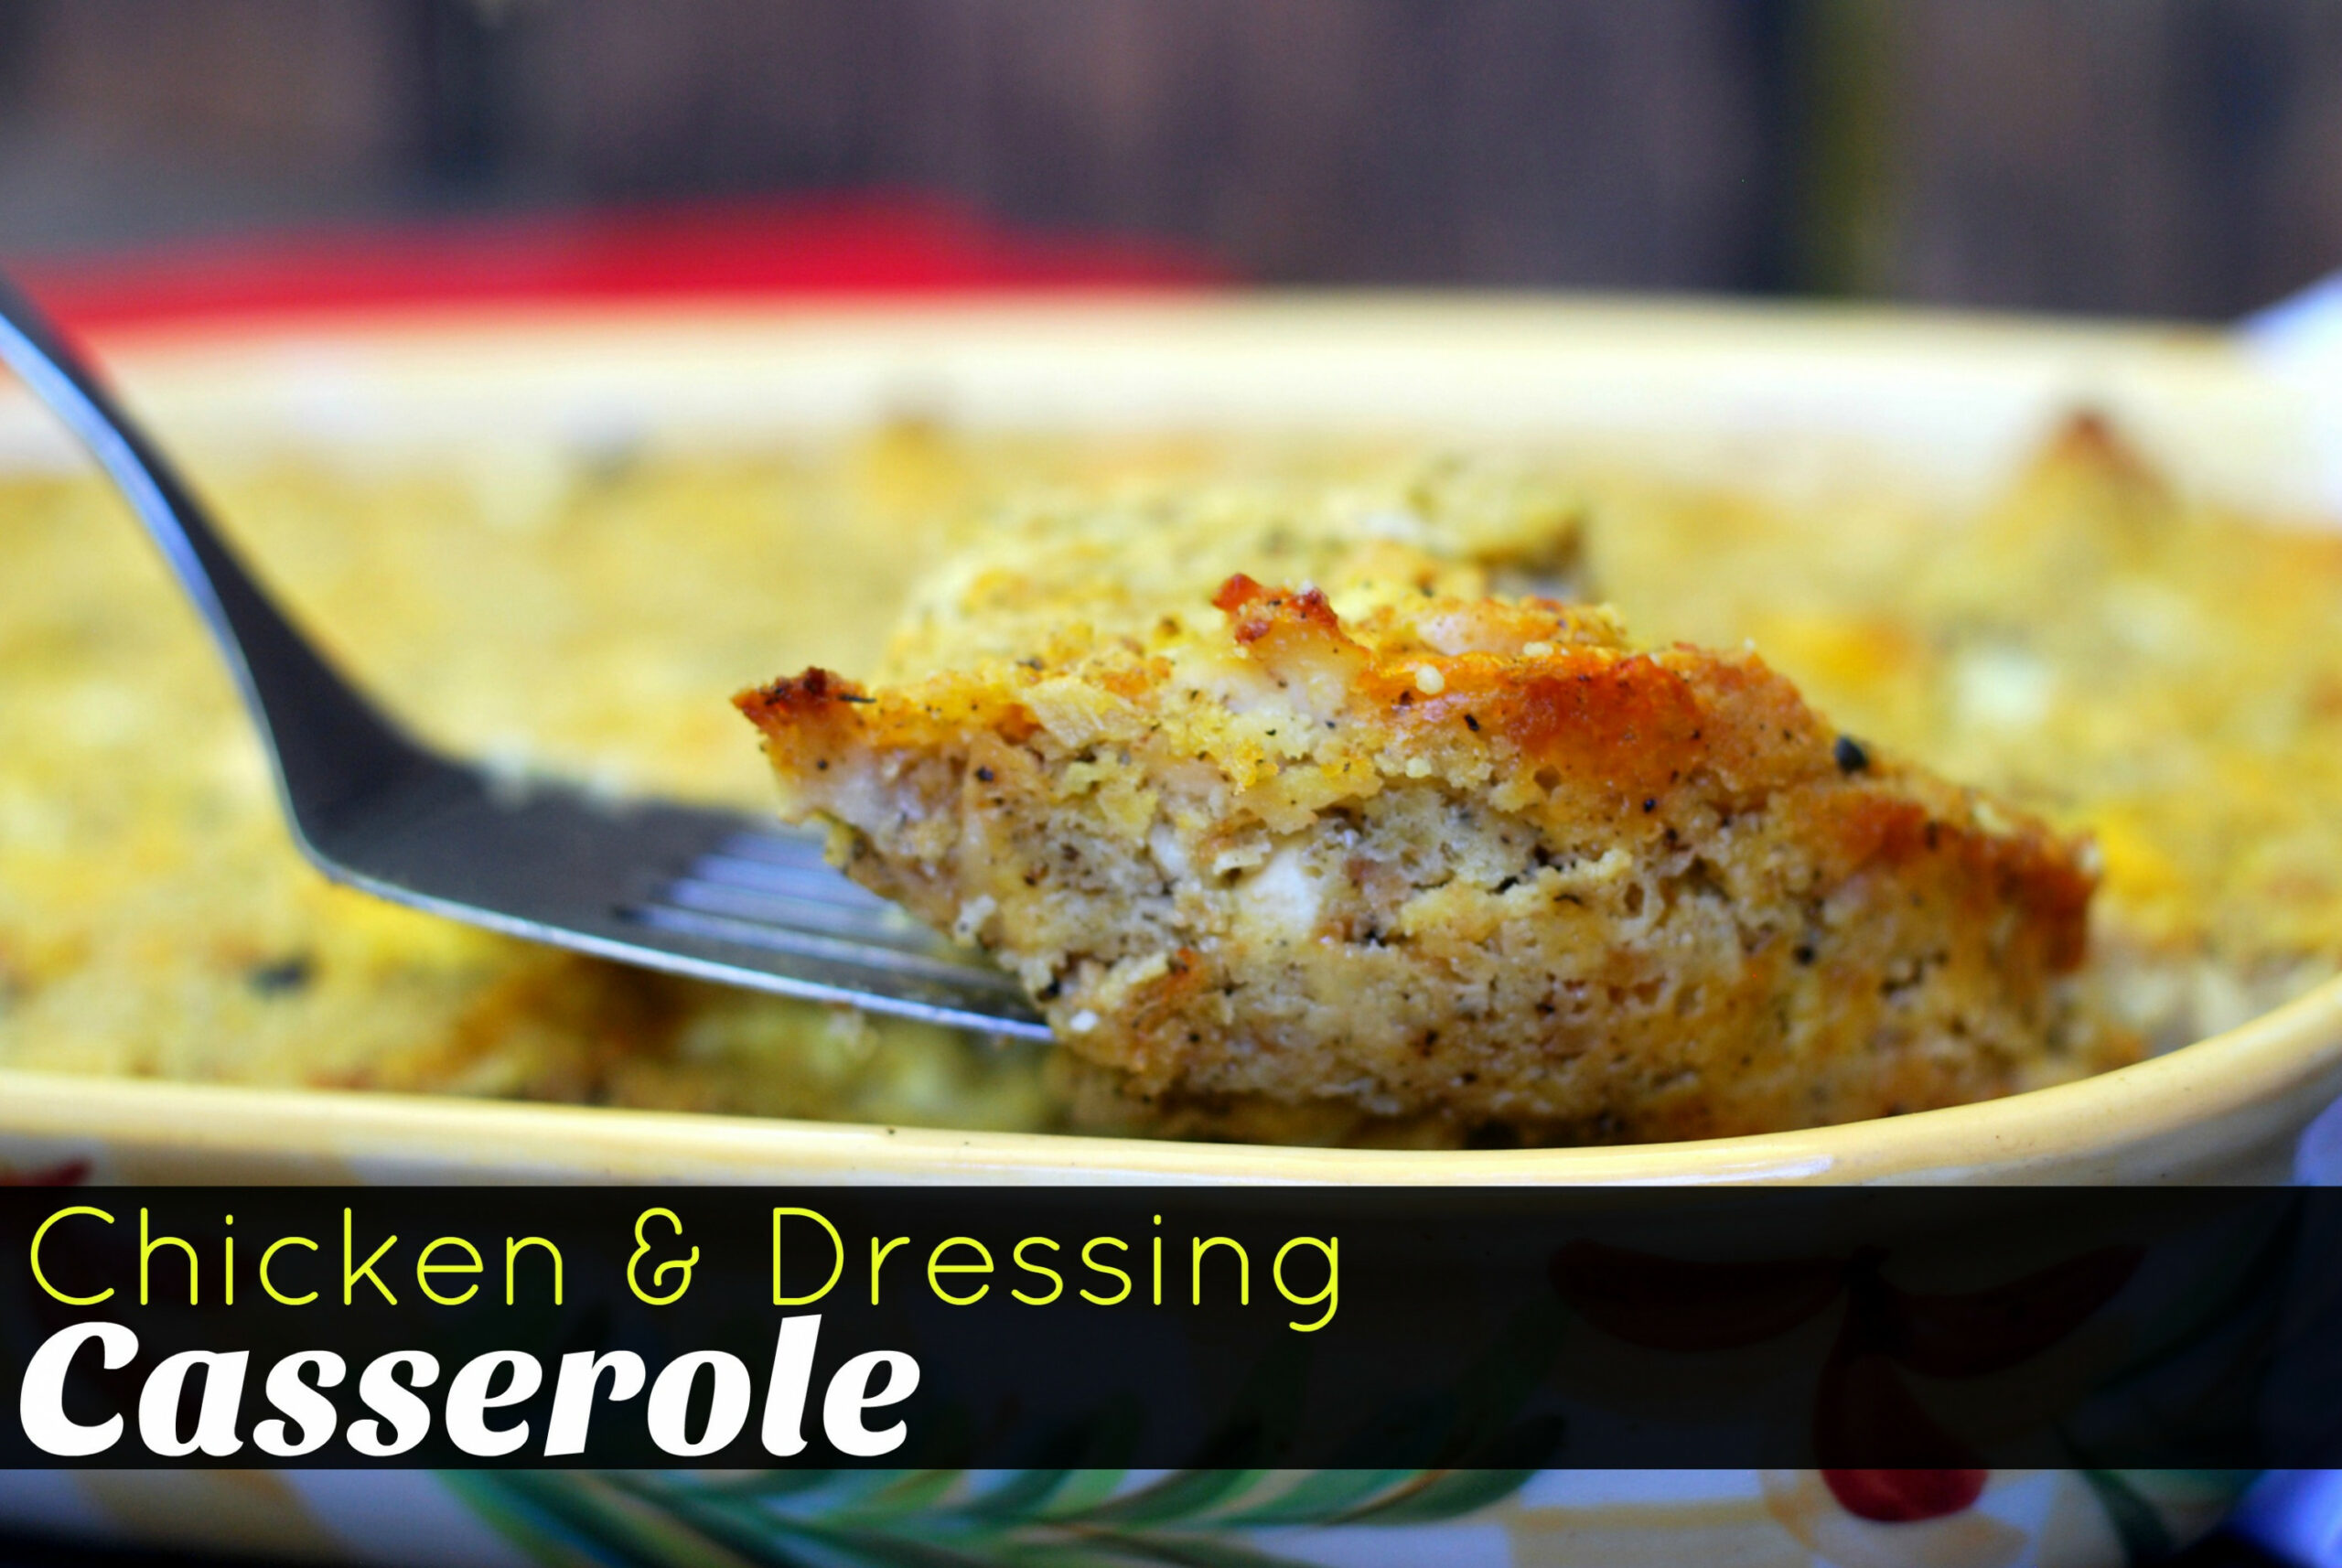 Chicken & Dressing Casserole - Aunt Bee's Recipes - chicken recipes with pictures pdf